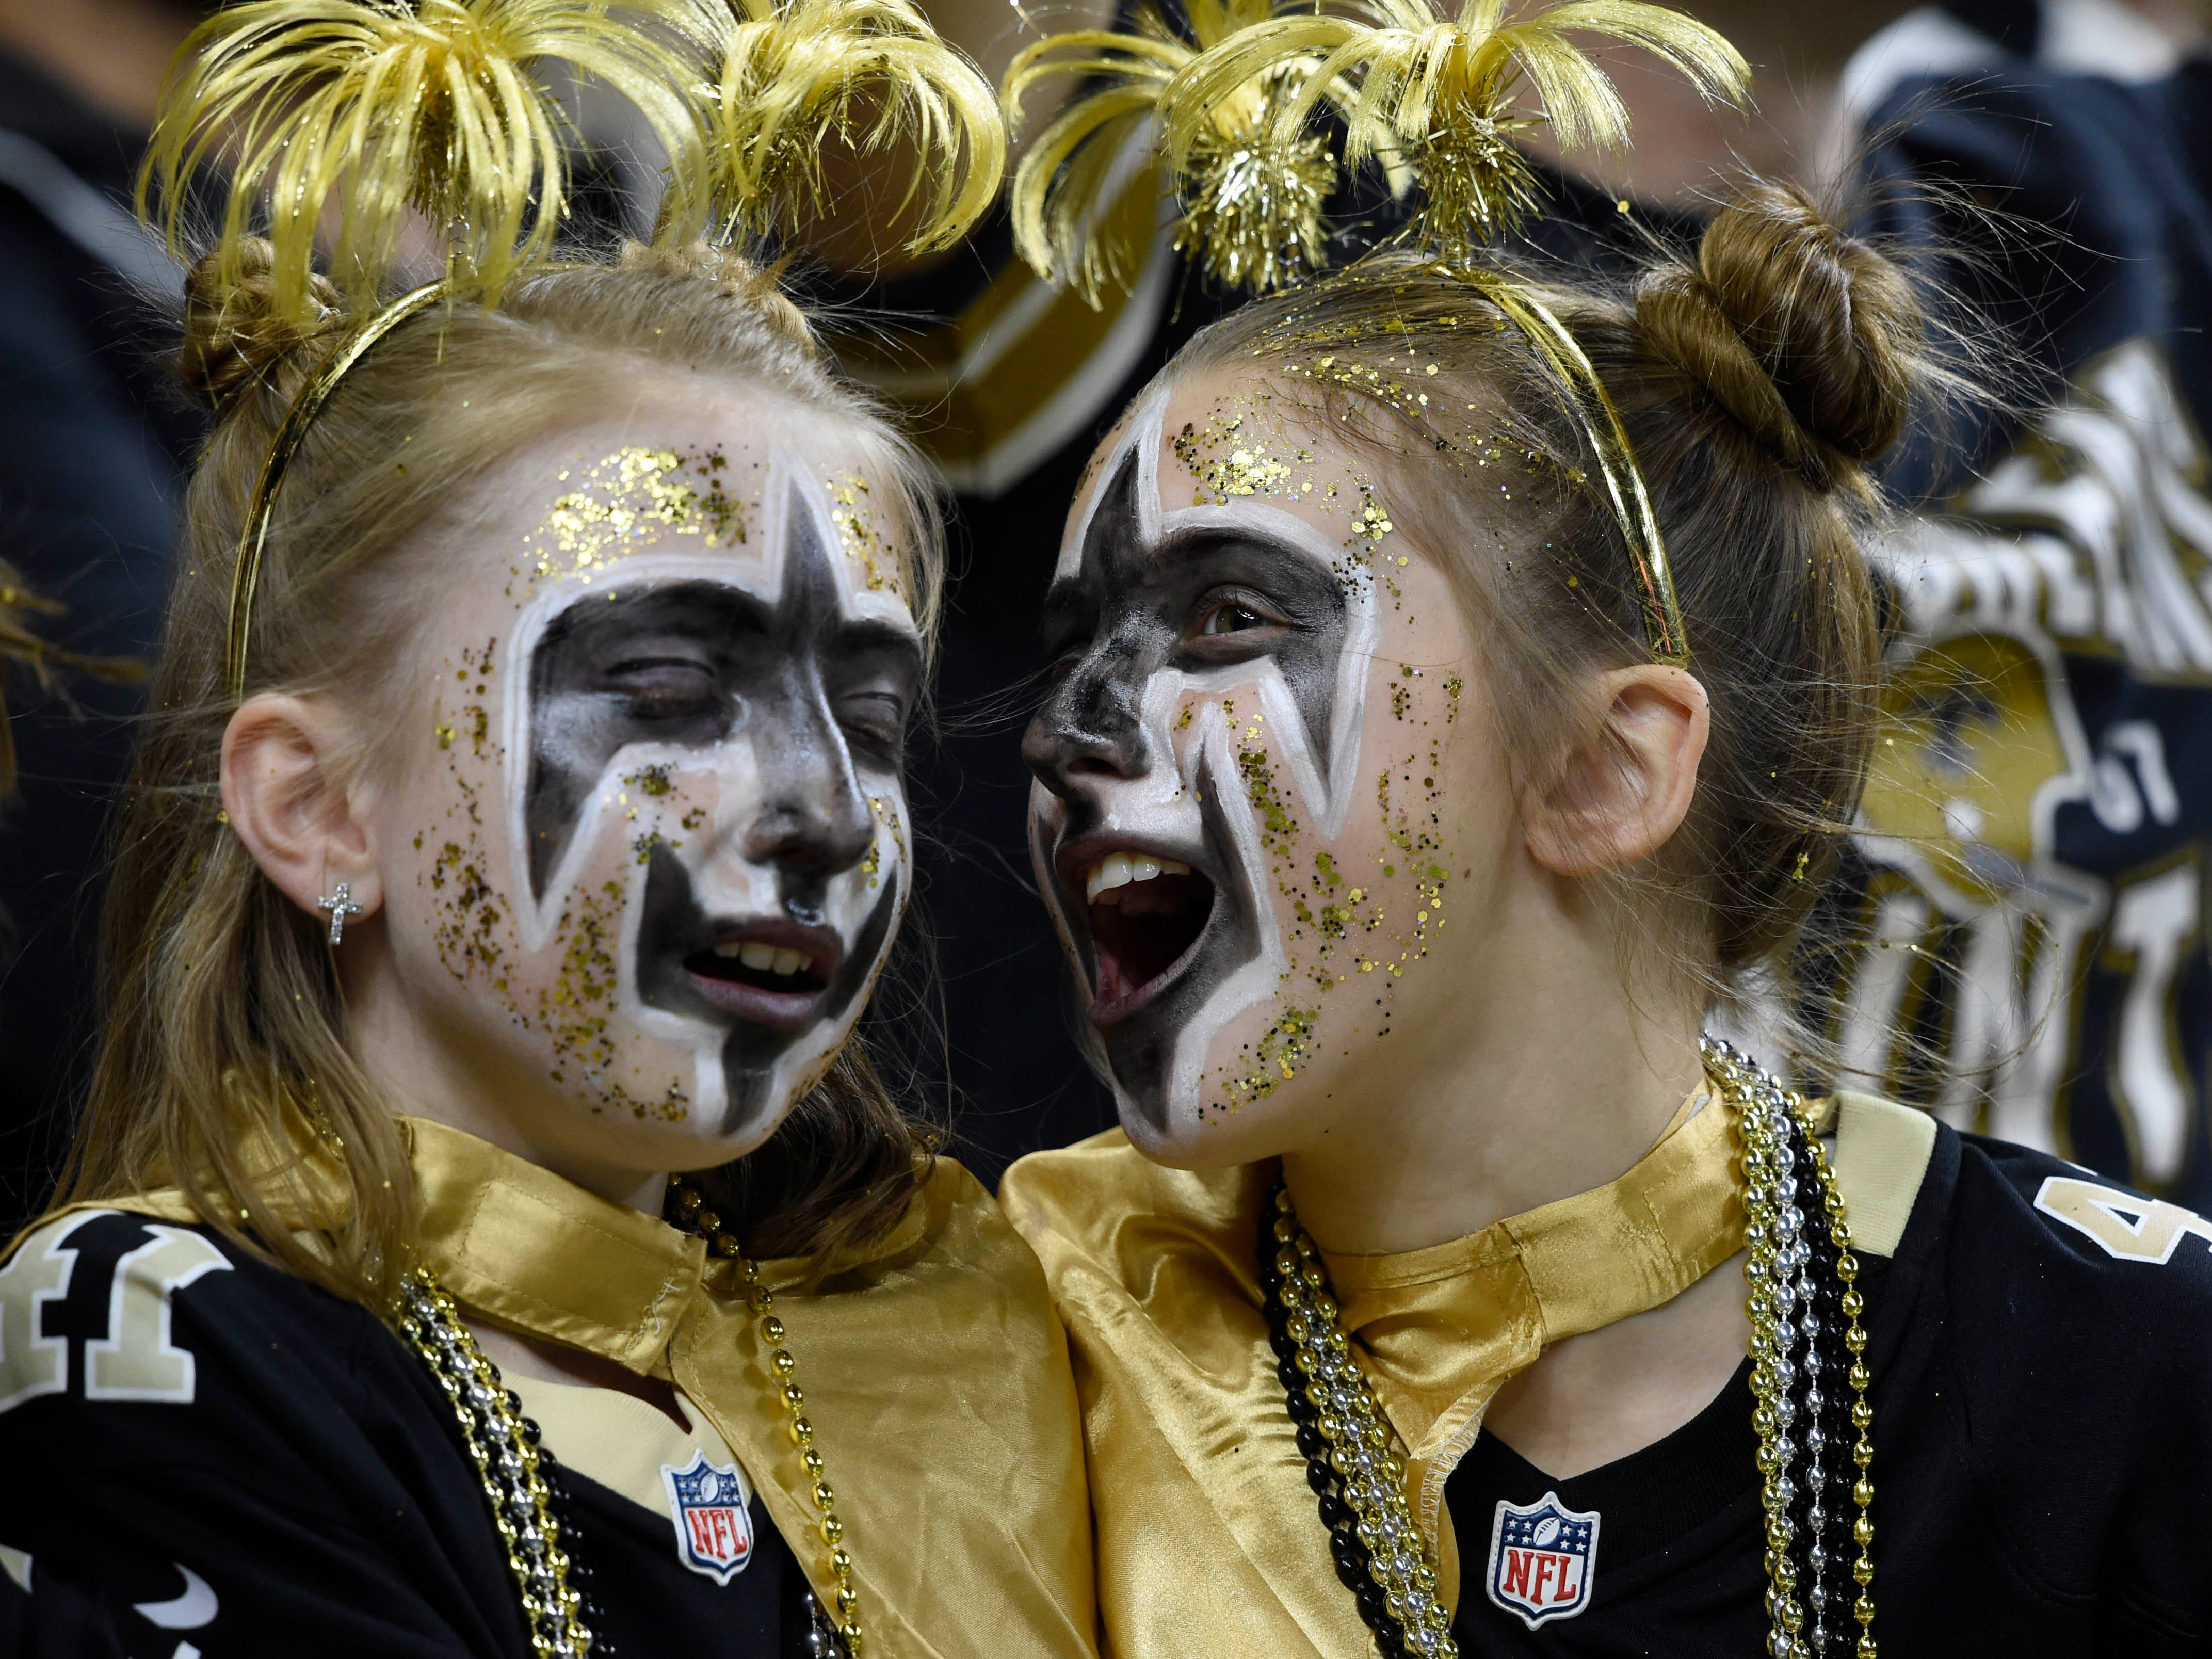 New Orleans Saints fans during the first quarter in the NFC Championship game against the Los Angeles Rams at Mercedes-Benz Superdome.